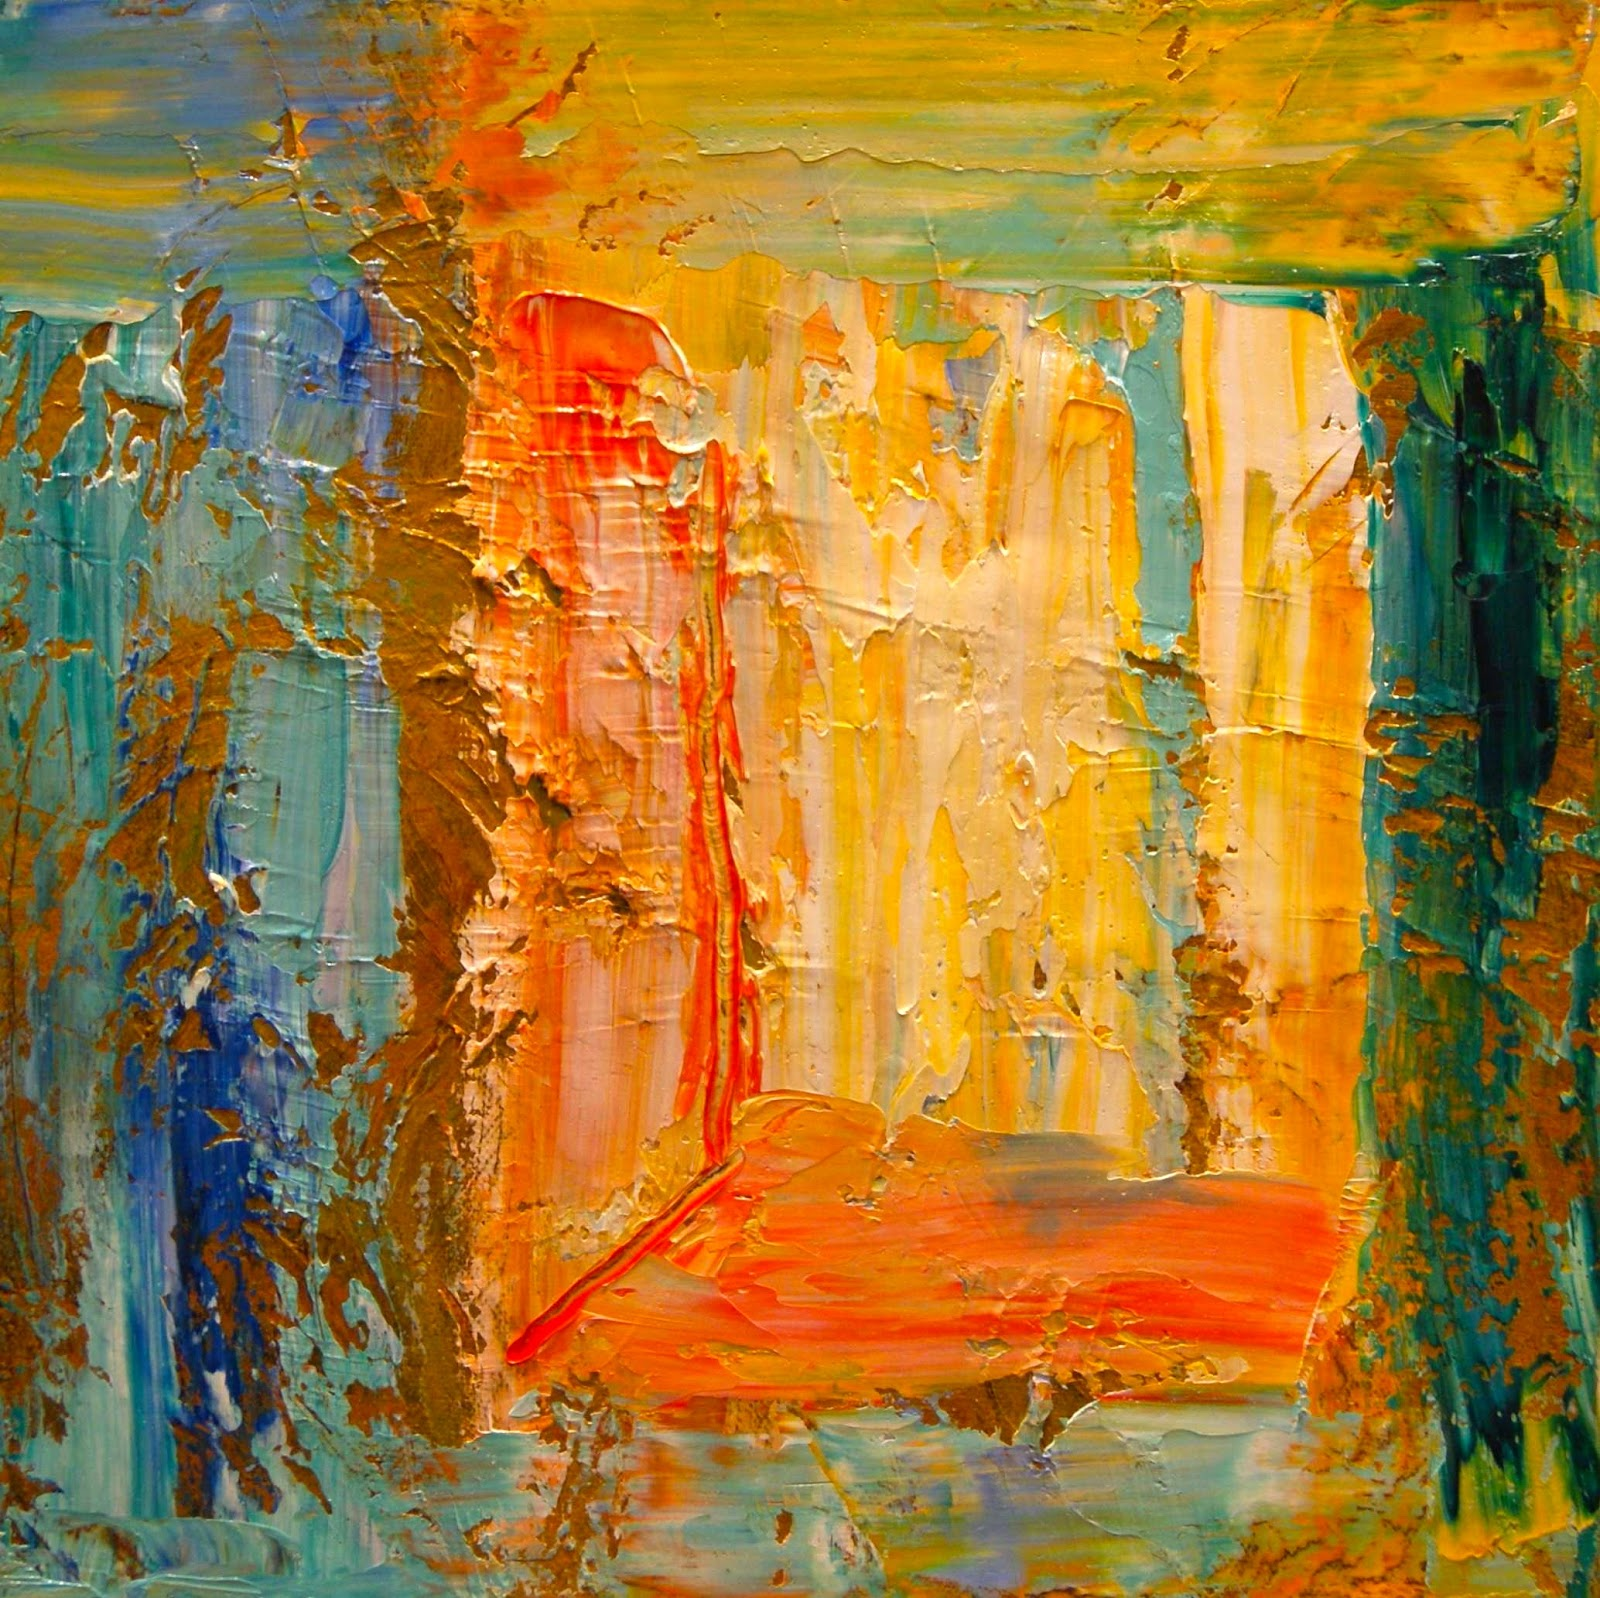 Paintings by Theresa Paden: Bright, Colorful Abstract ...